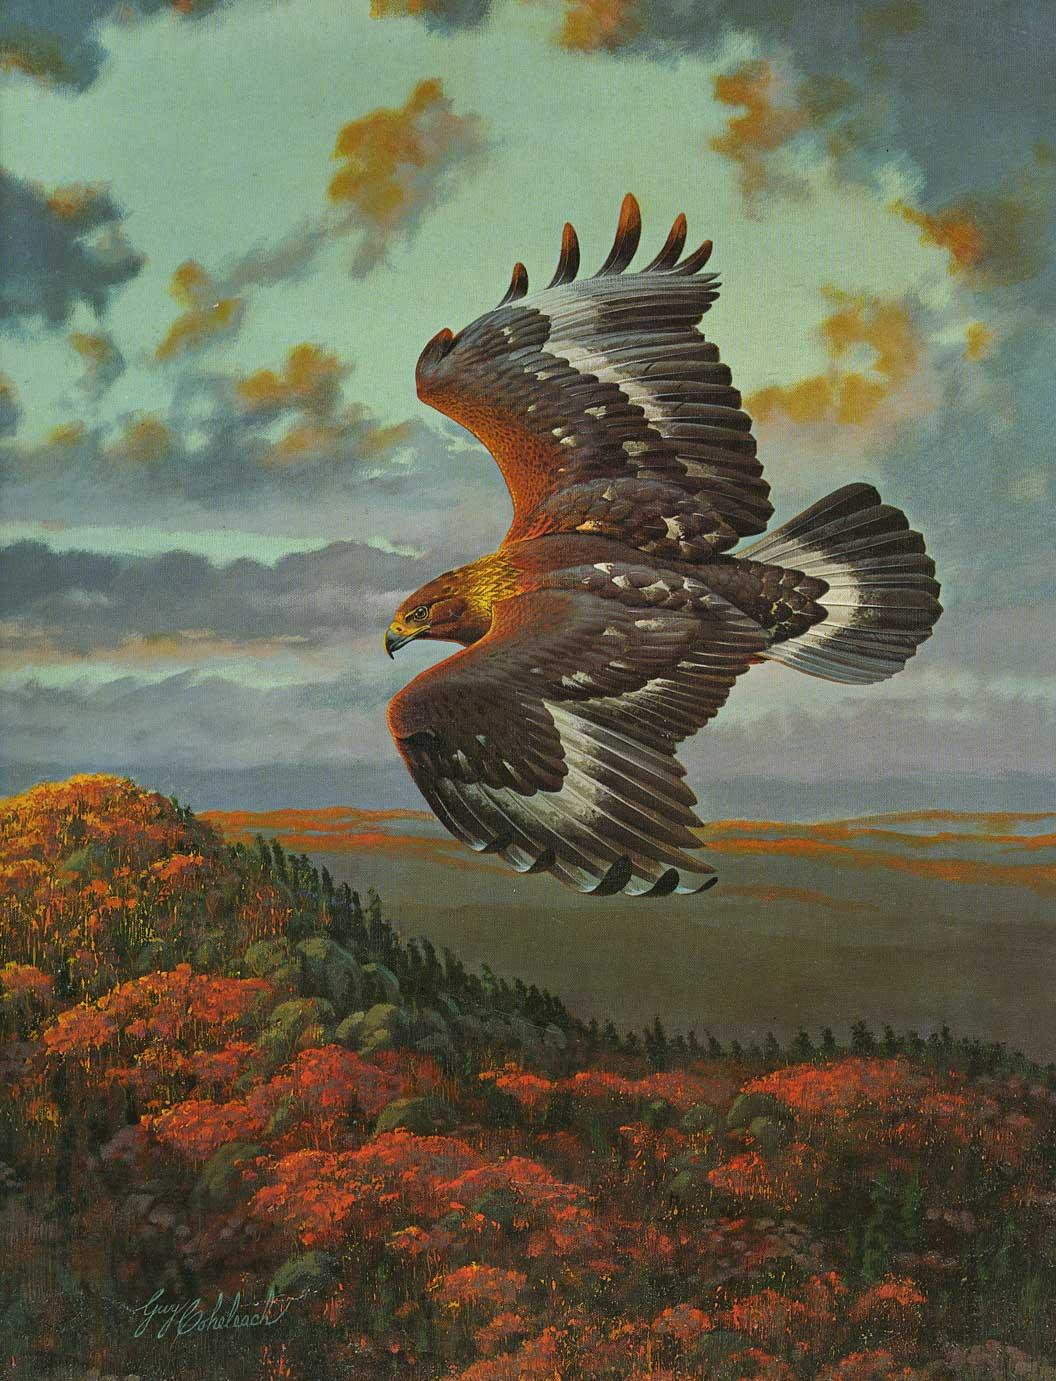 """Golden Eagle/Hawk Mountain""  -  40"" x 30"" ""Golden Eagle"" - Hawk Mountain  Birds of Prey  Raptors"